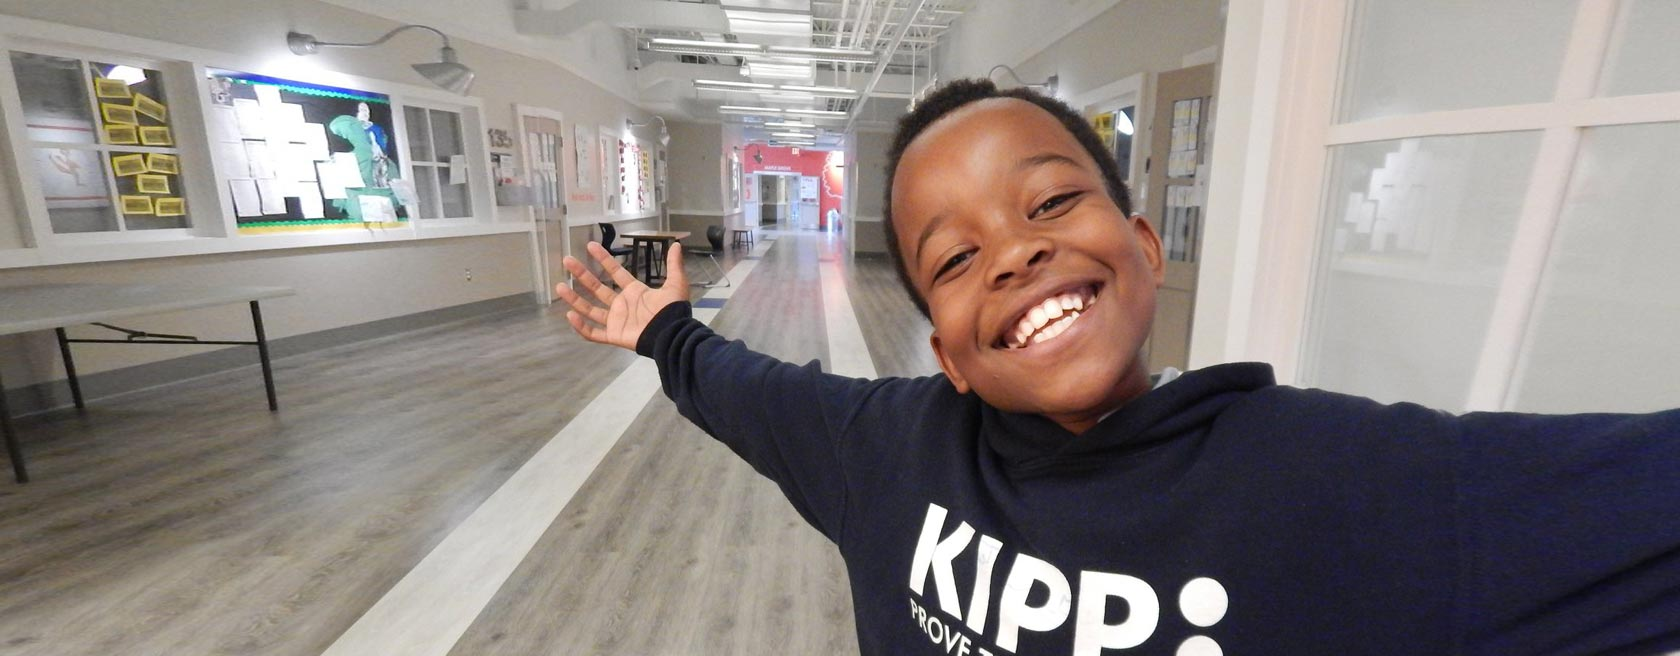 KIPP Columbus Closed: President's Day